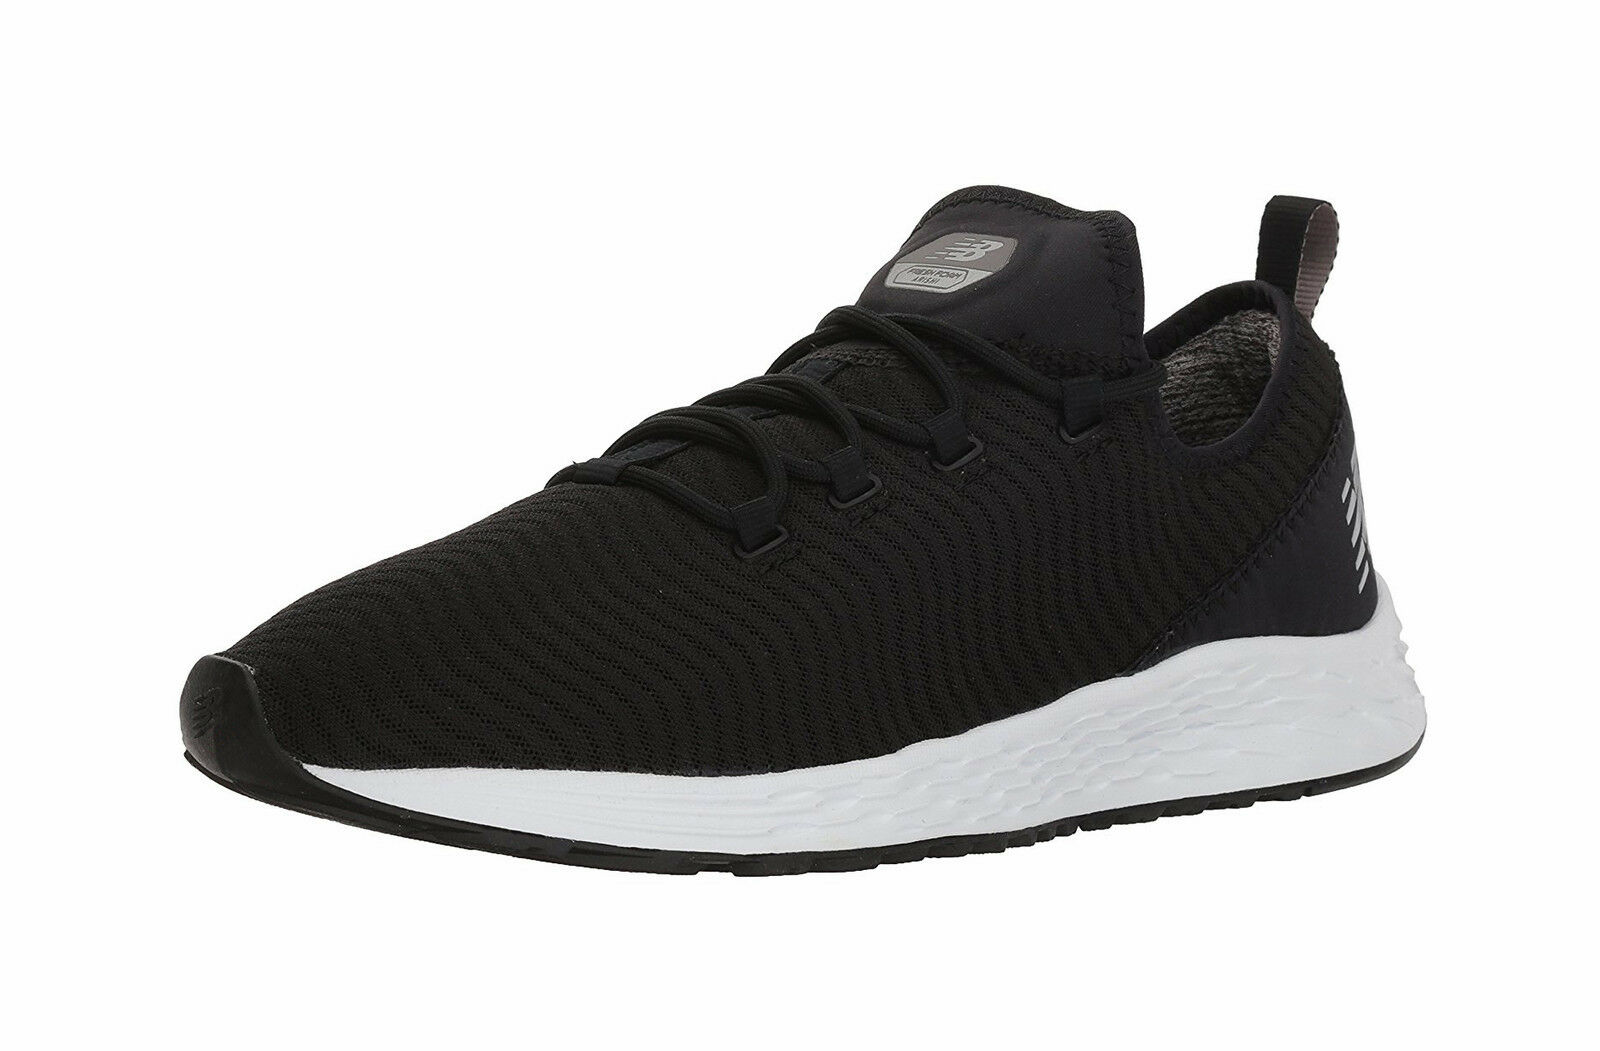 New Balance MARIALB1 Shoes Mens Aria 1 Mesh MARIALB1 Balance Black Running Sneakers 6c6a33